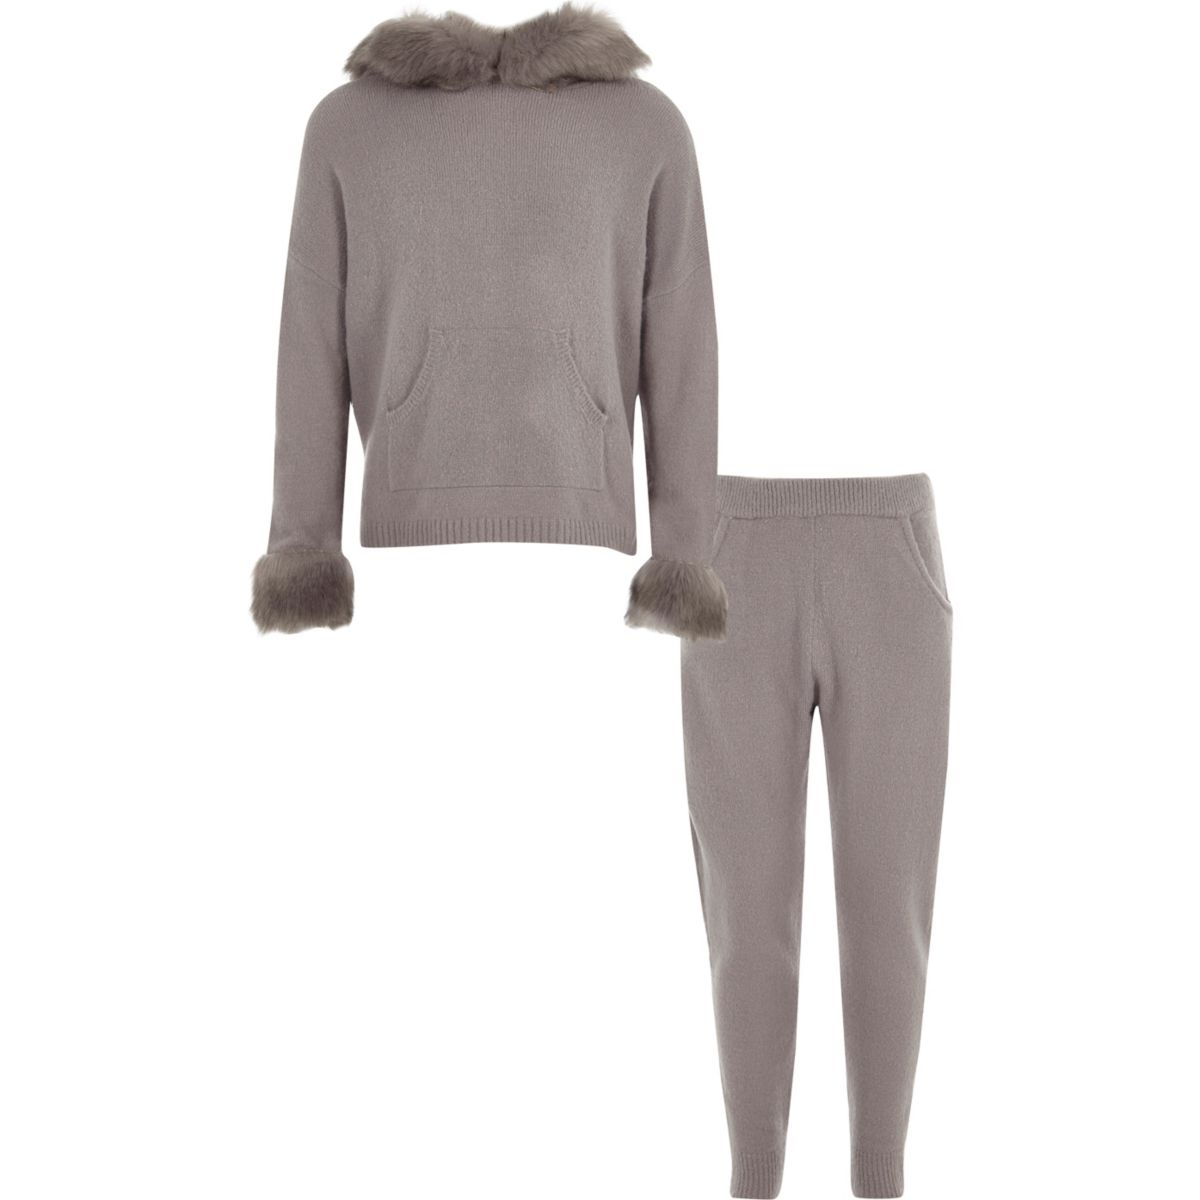 Girls grey faux fur knitted jogger outfit